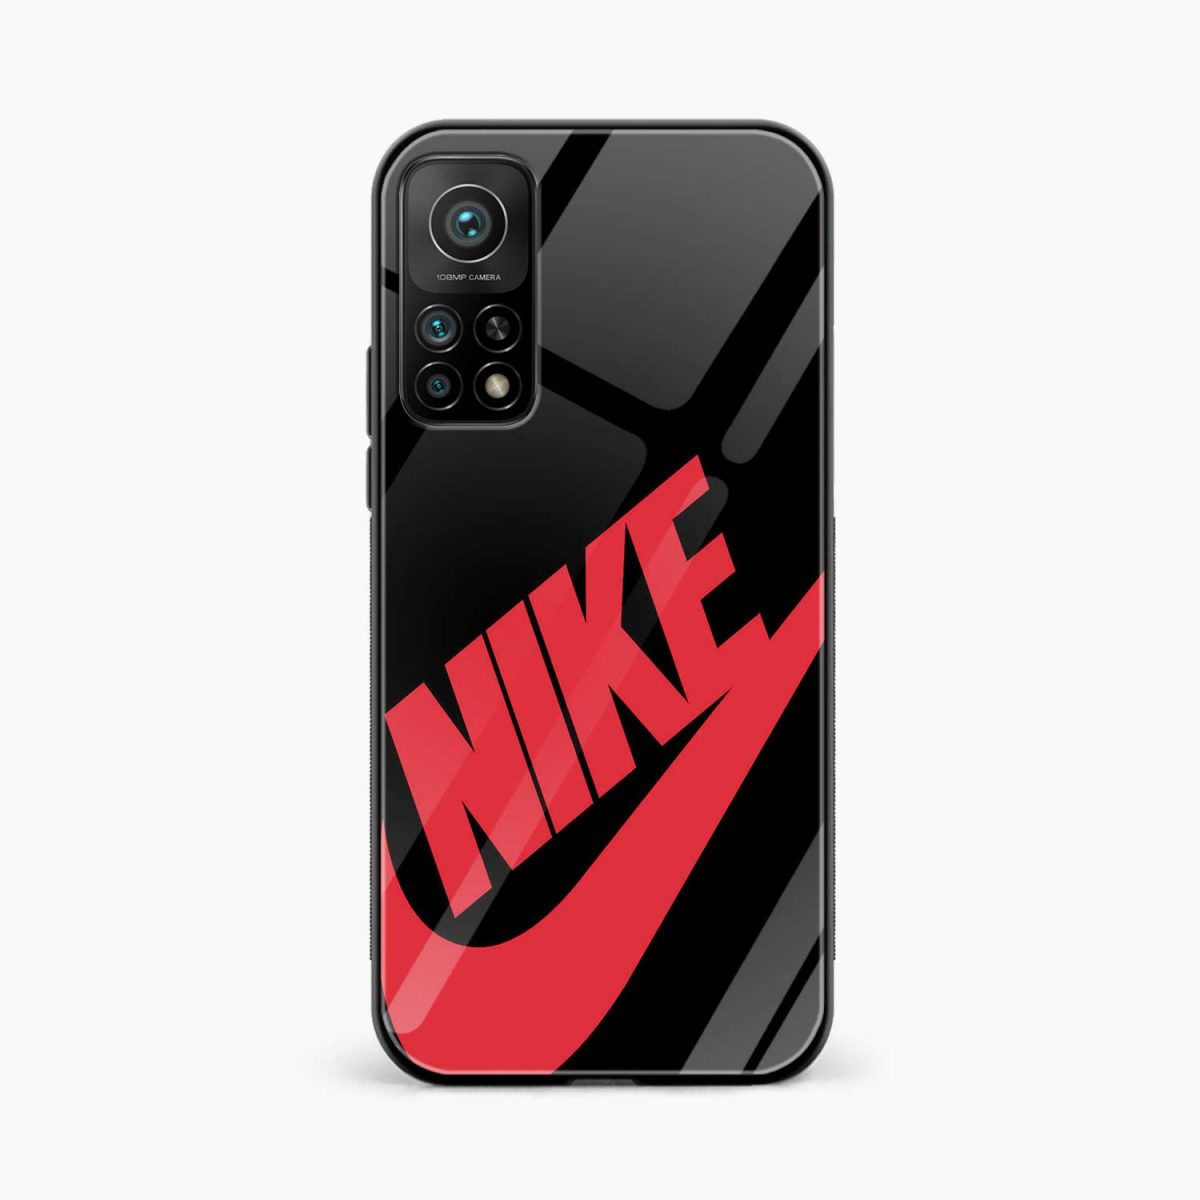 big red nike xiaomi mi 10t pro back cover front view